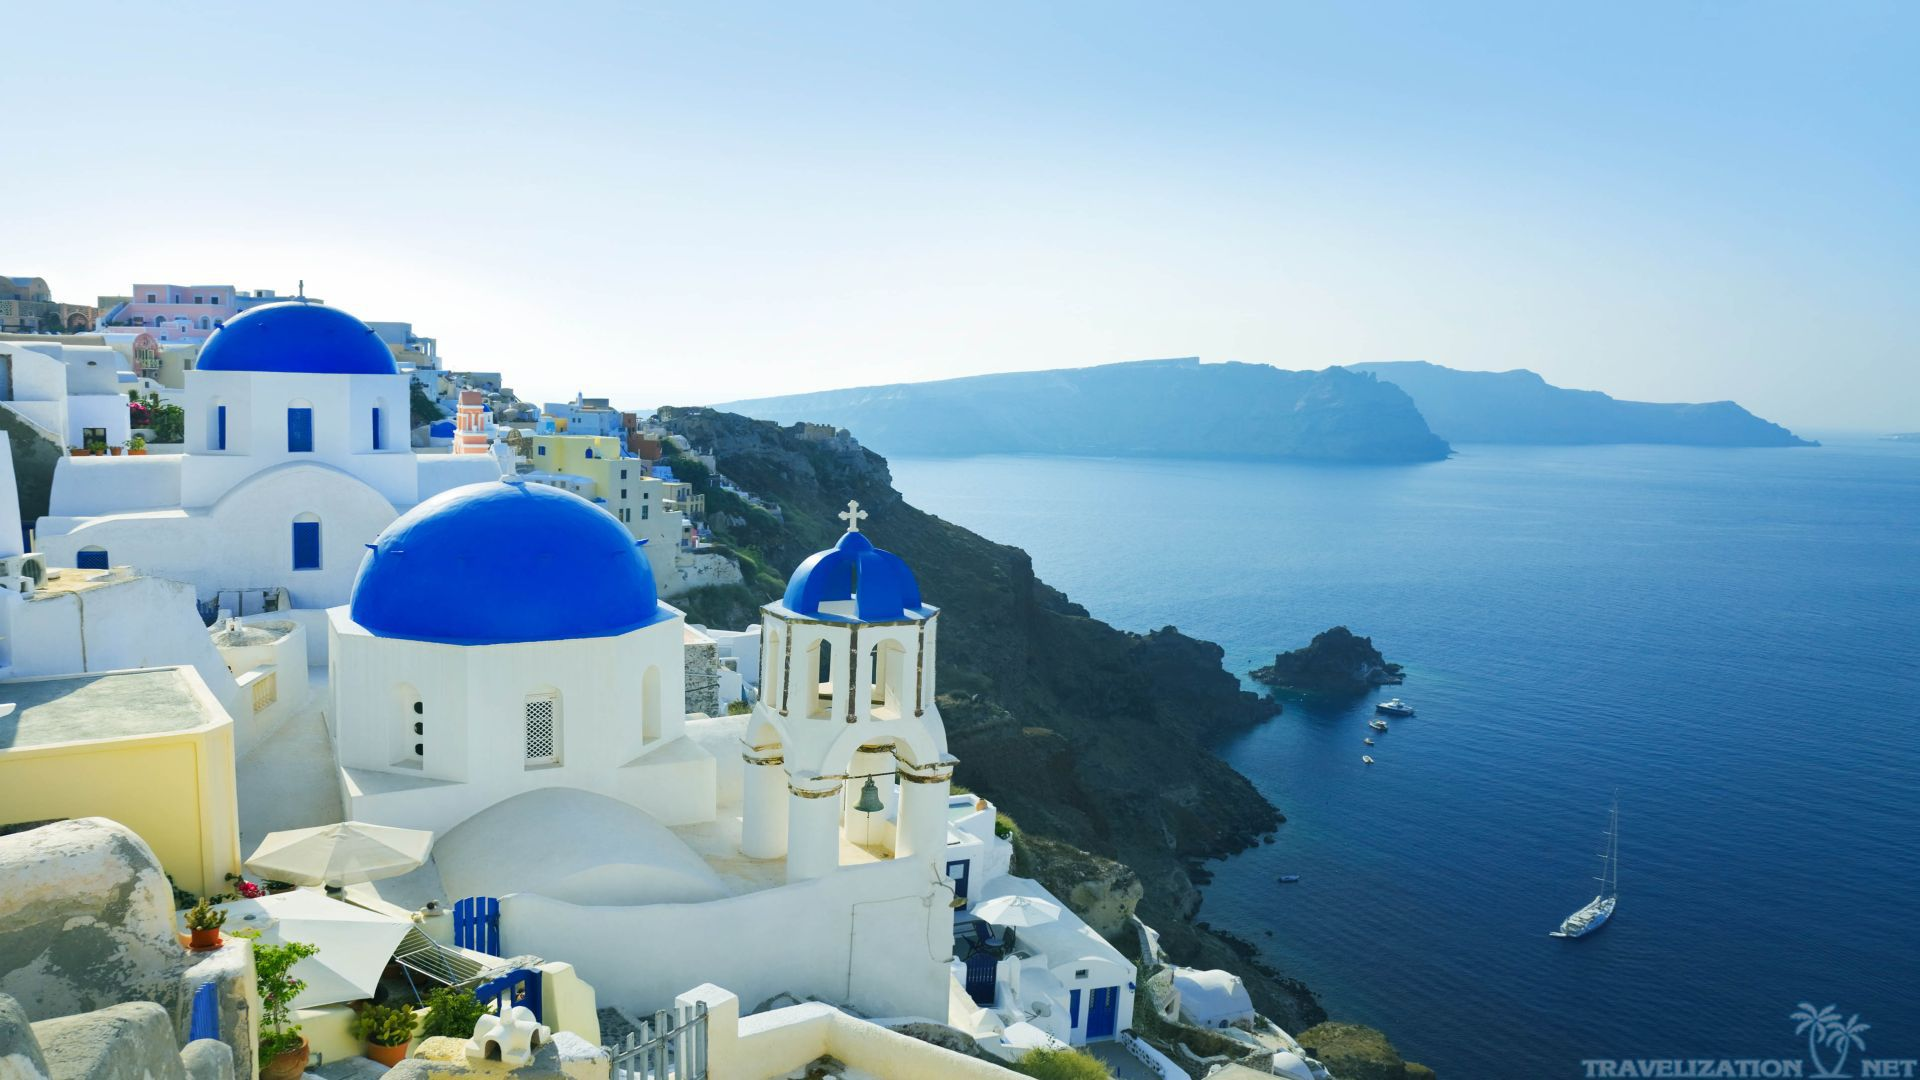 Santorini Wallpapers 1080p 2A1411H   4USkY 1920x1080